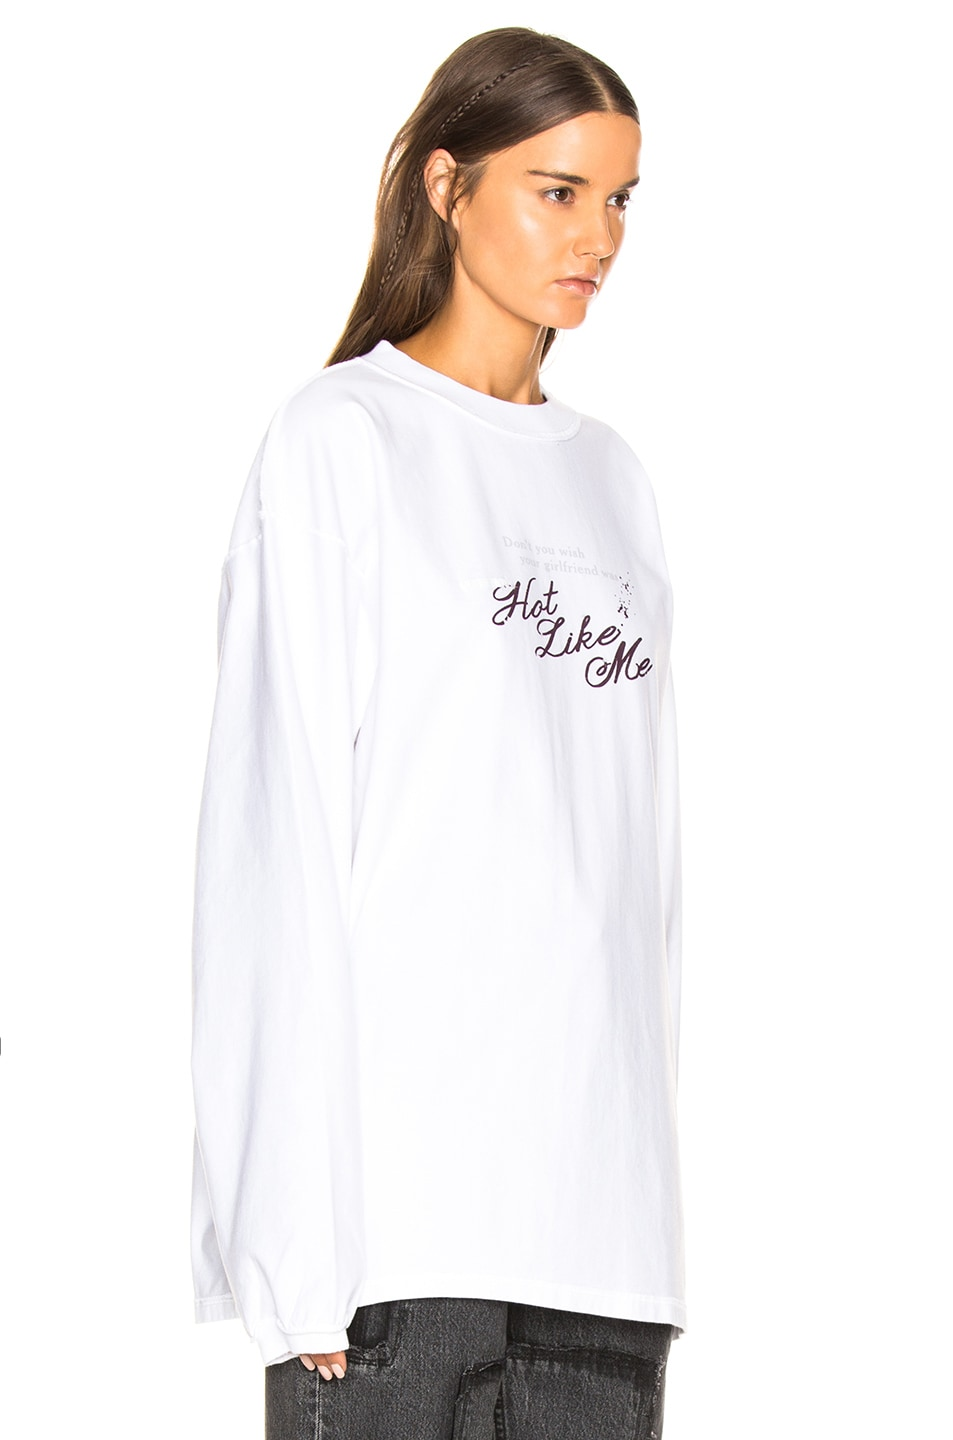 Image 3 of VETEMENTS Inside Out Long Sleeve Graphic Tee in White & Hot Like Me